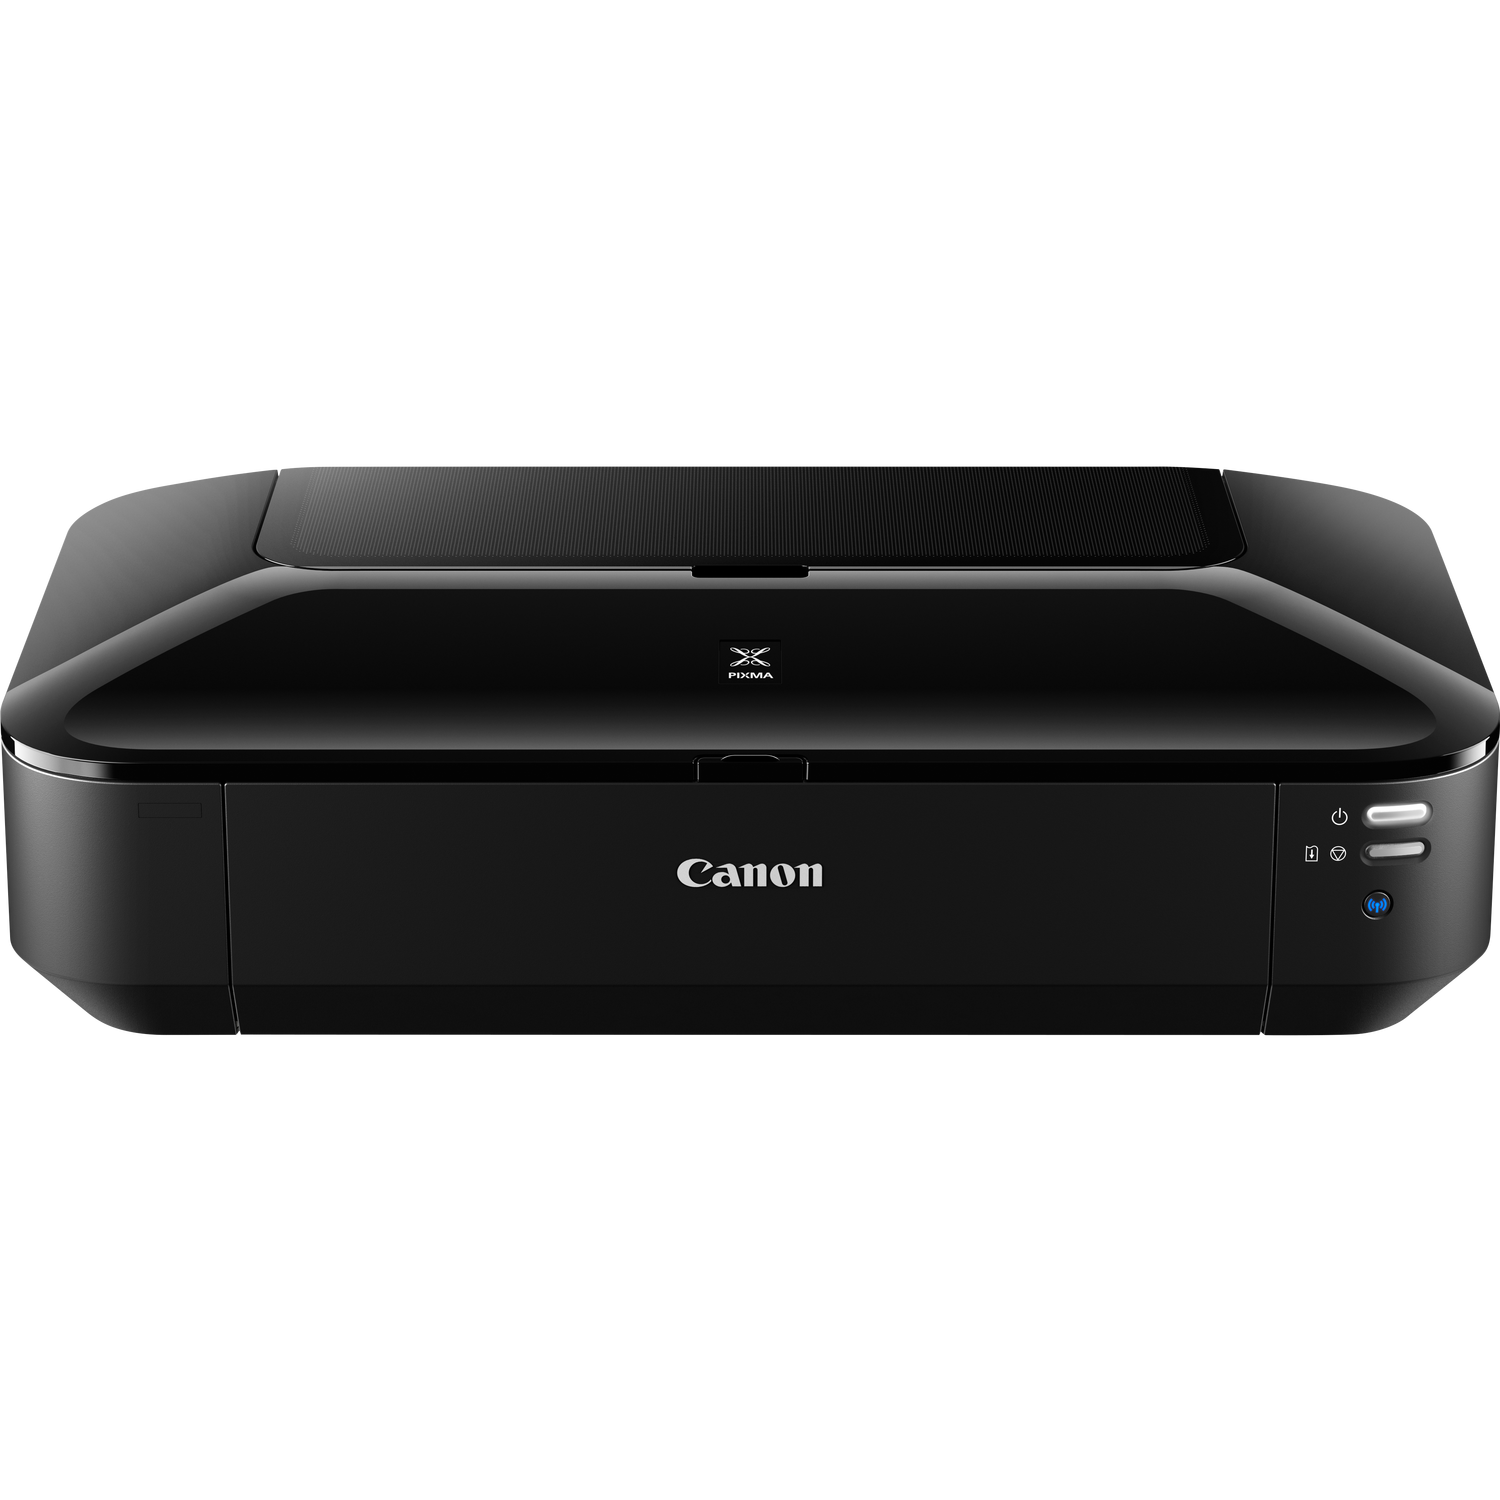 canon pixma ix6850 in imprimantes wifi canon france boutique. Black Bedroom Furniture Sets. Home Design Ideas